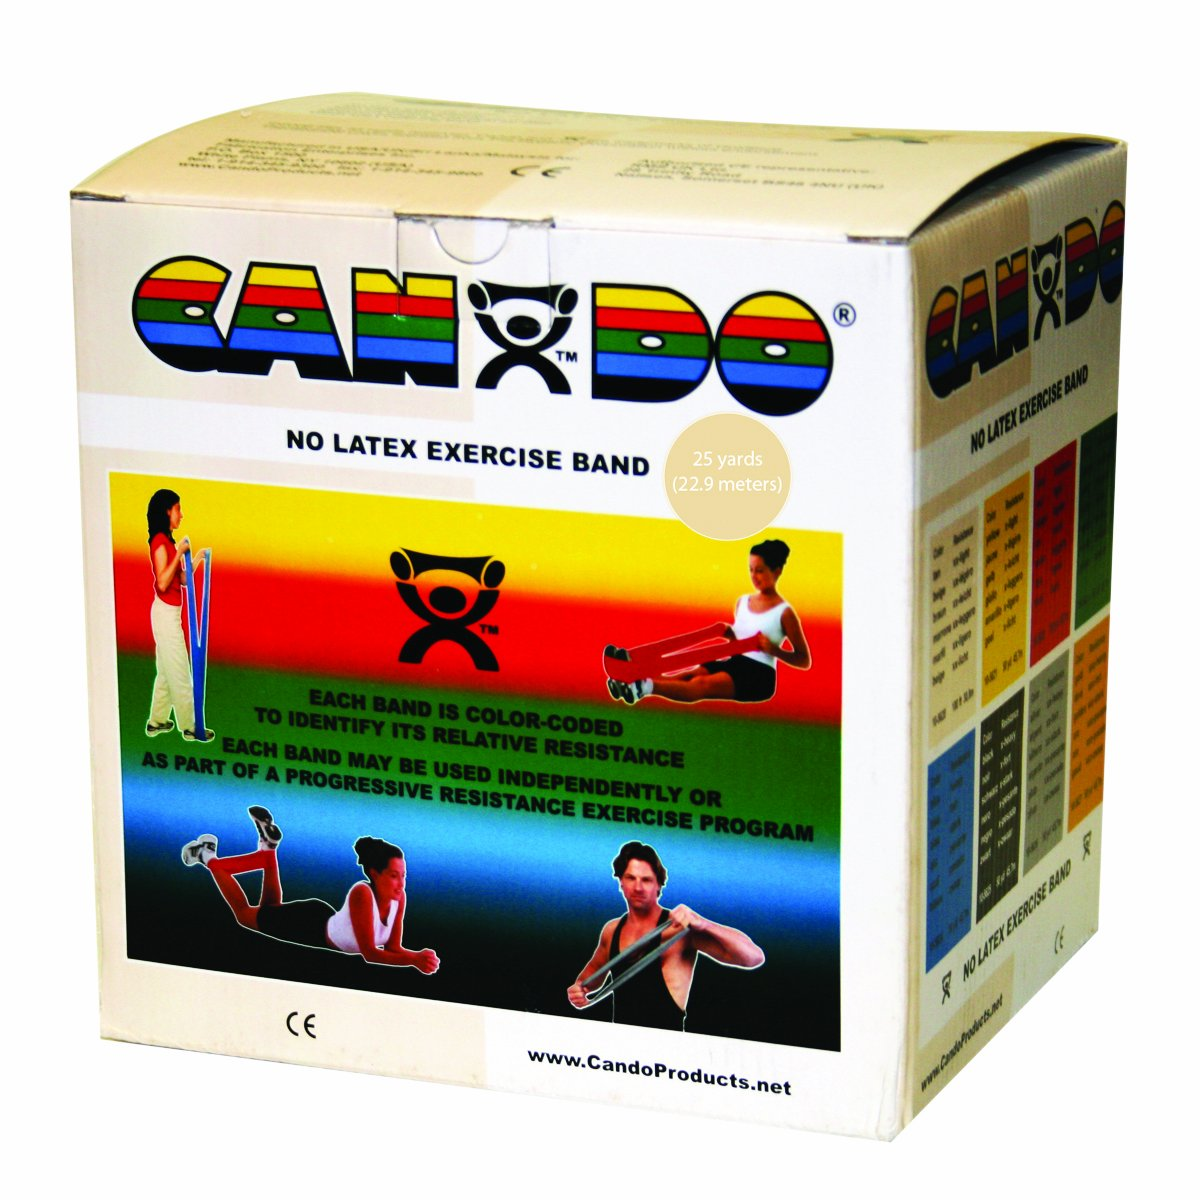 OFFicial mail order Houston Mall CanDo 10-5630 Latex-Free Exercise Band 25 Dispenser Tan yd.